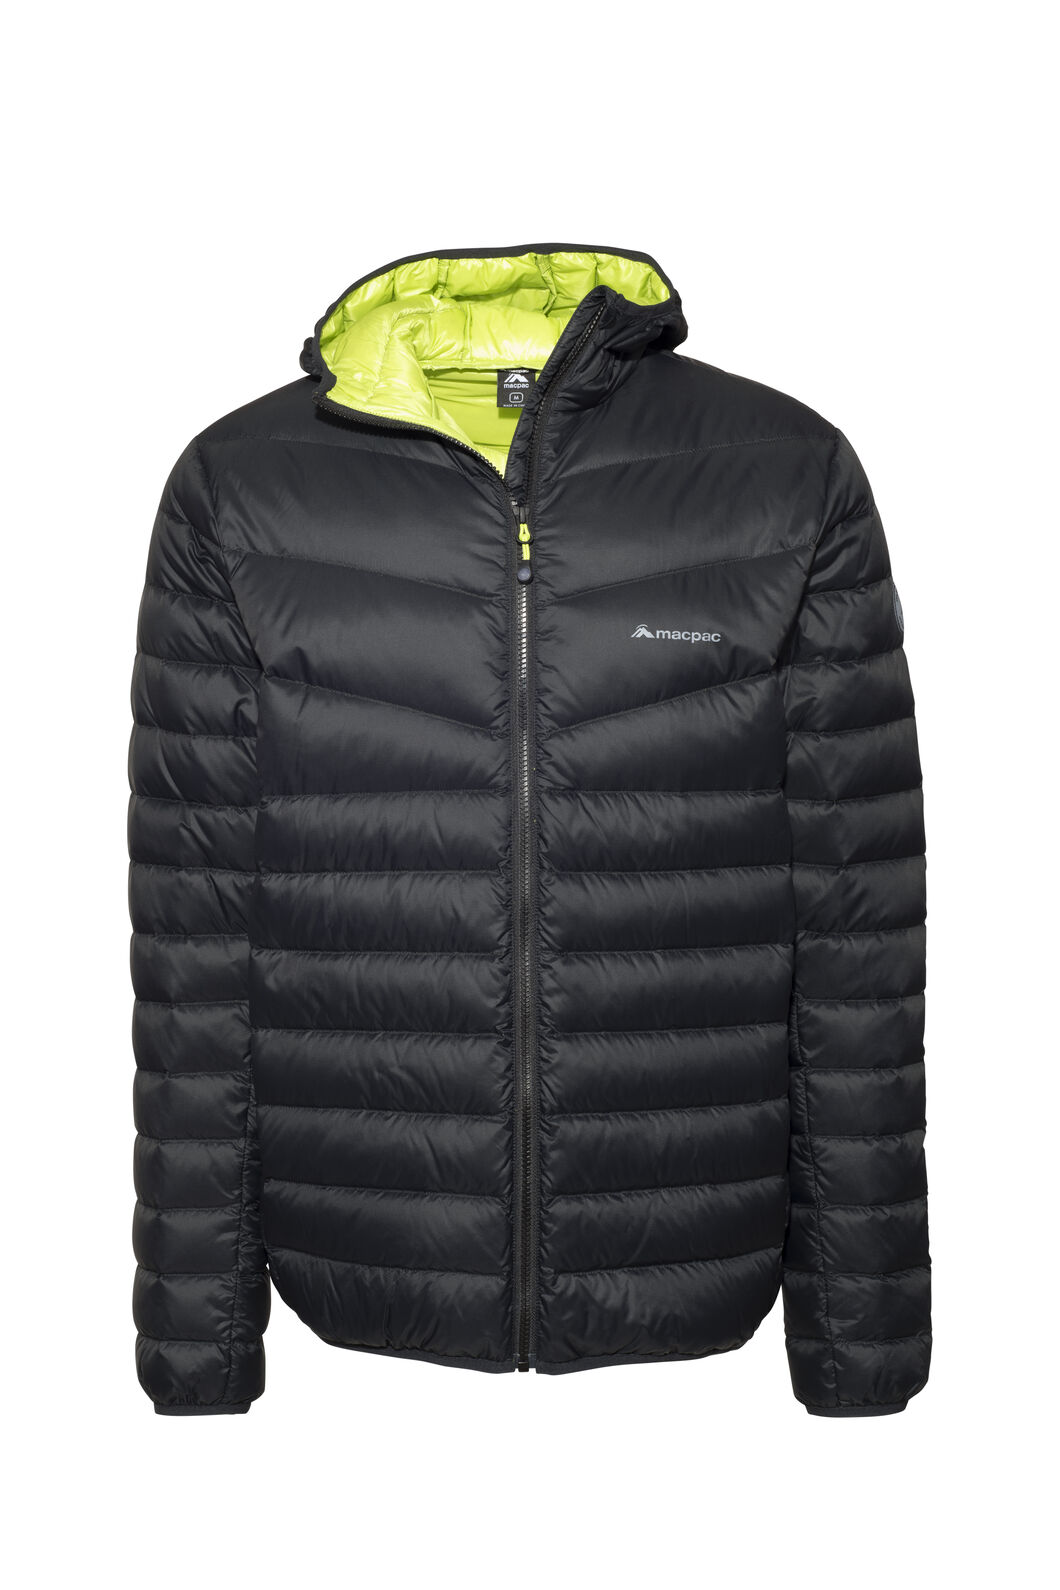 Macpac Mercury Down Jacket - Men's, Black/Tender Shoots, hi-res